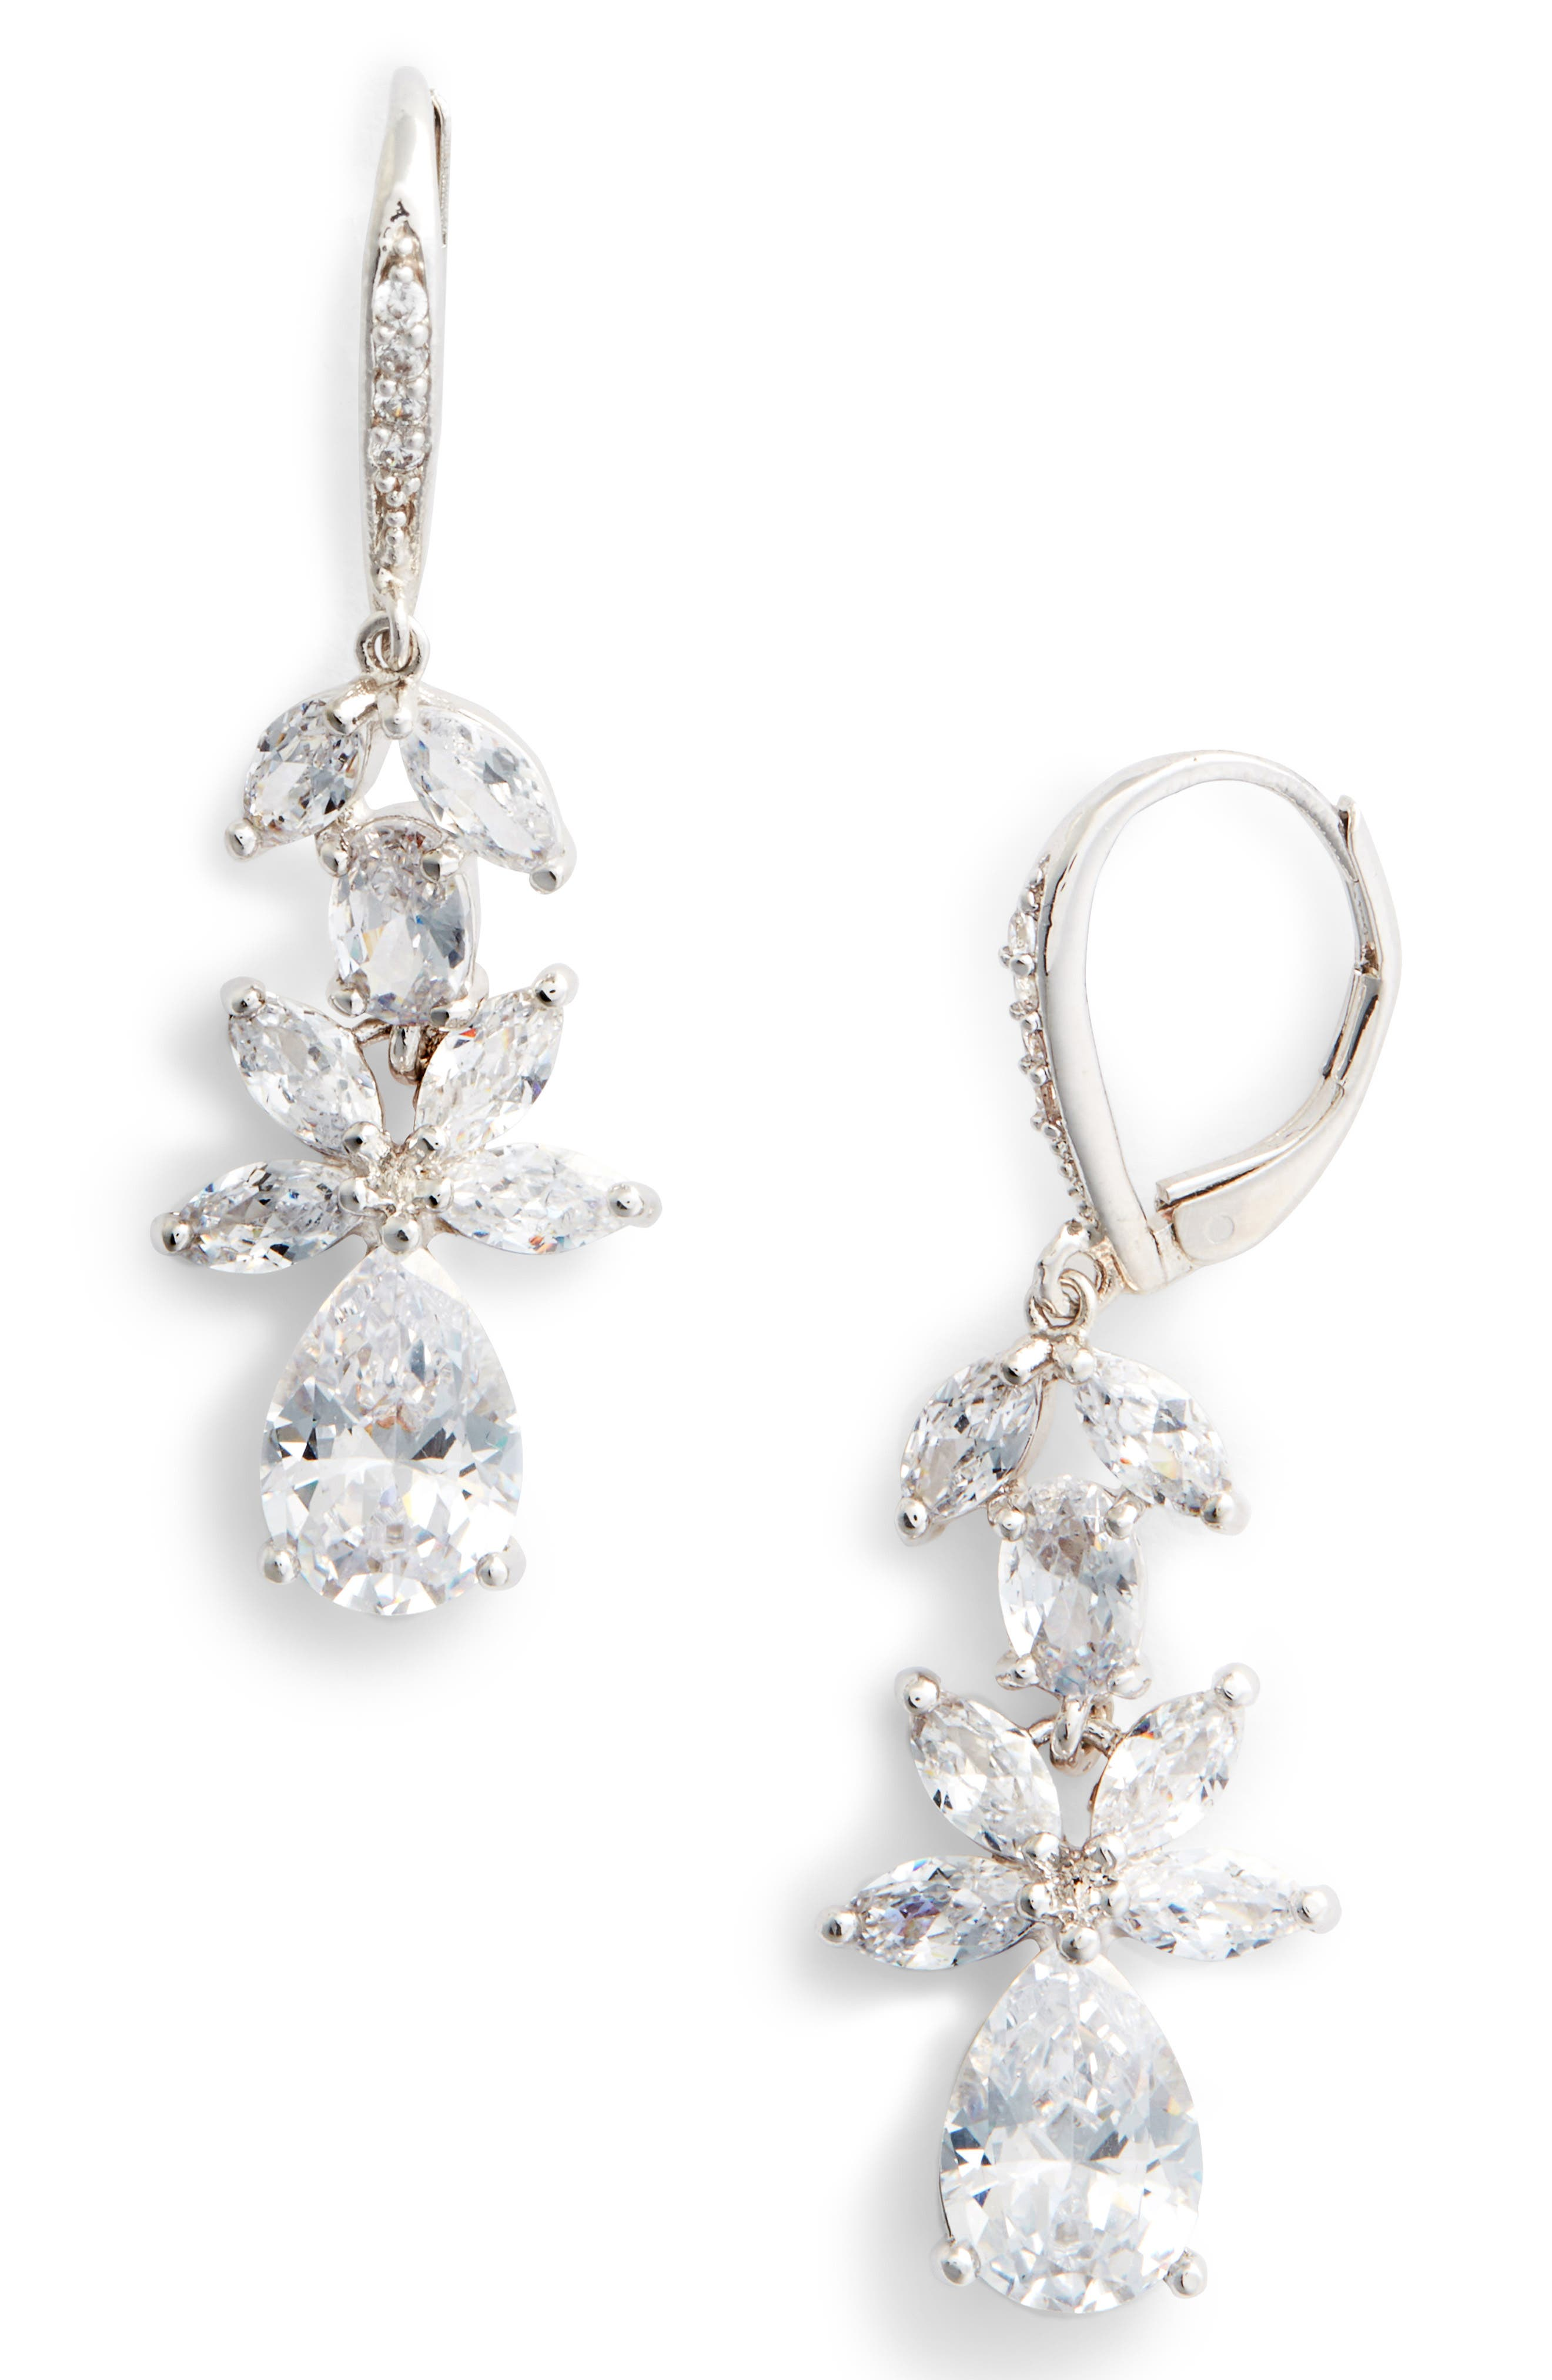 Floral Cubic Zirconia Earrings,                             Main thumbnail 1, color,                             White/ Silver